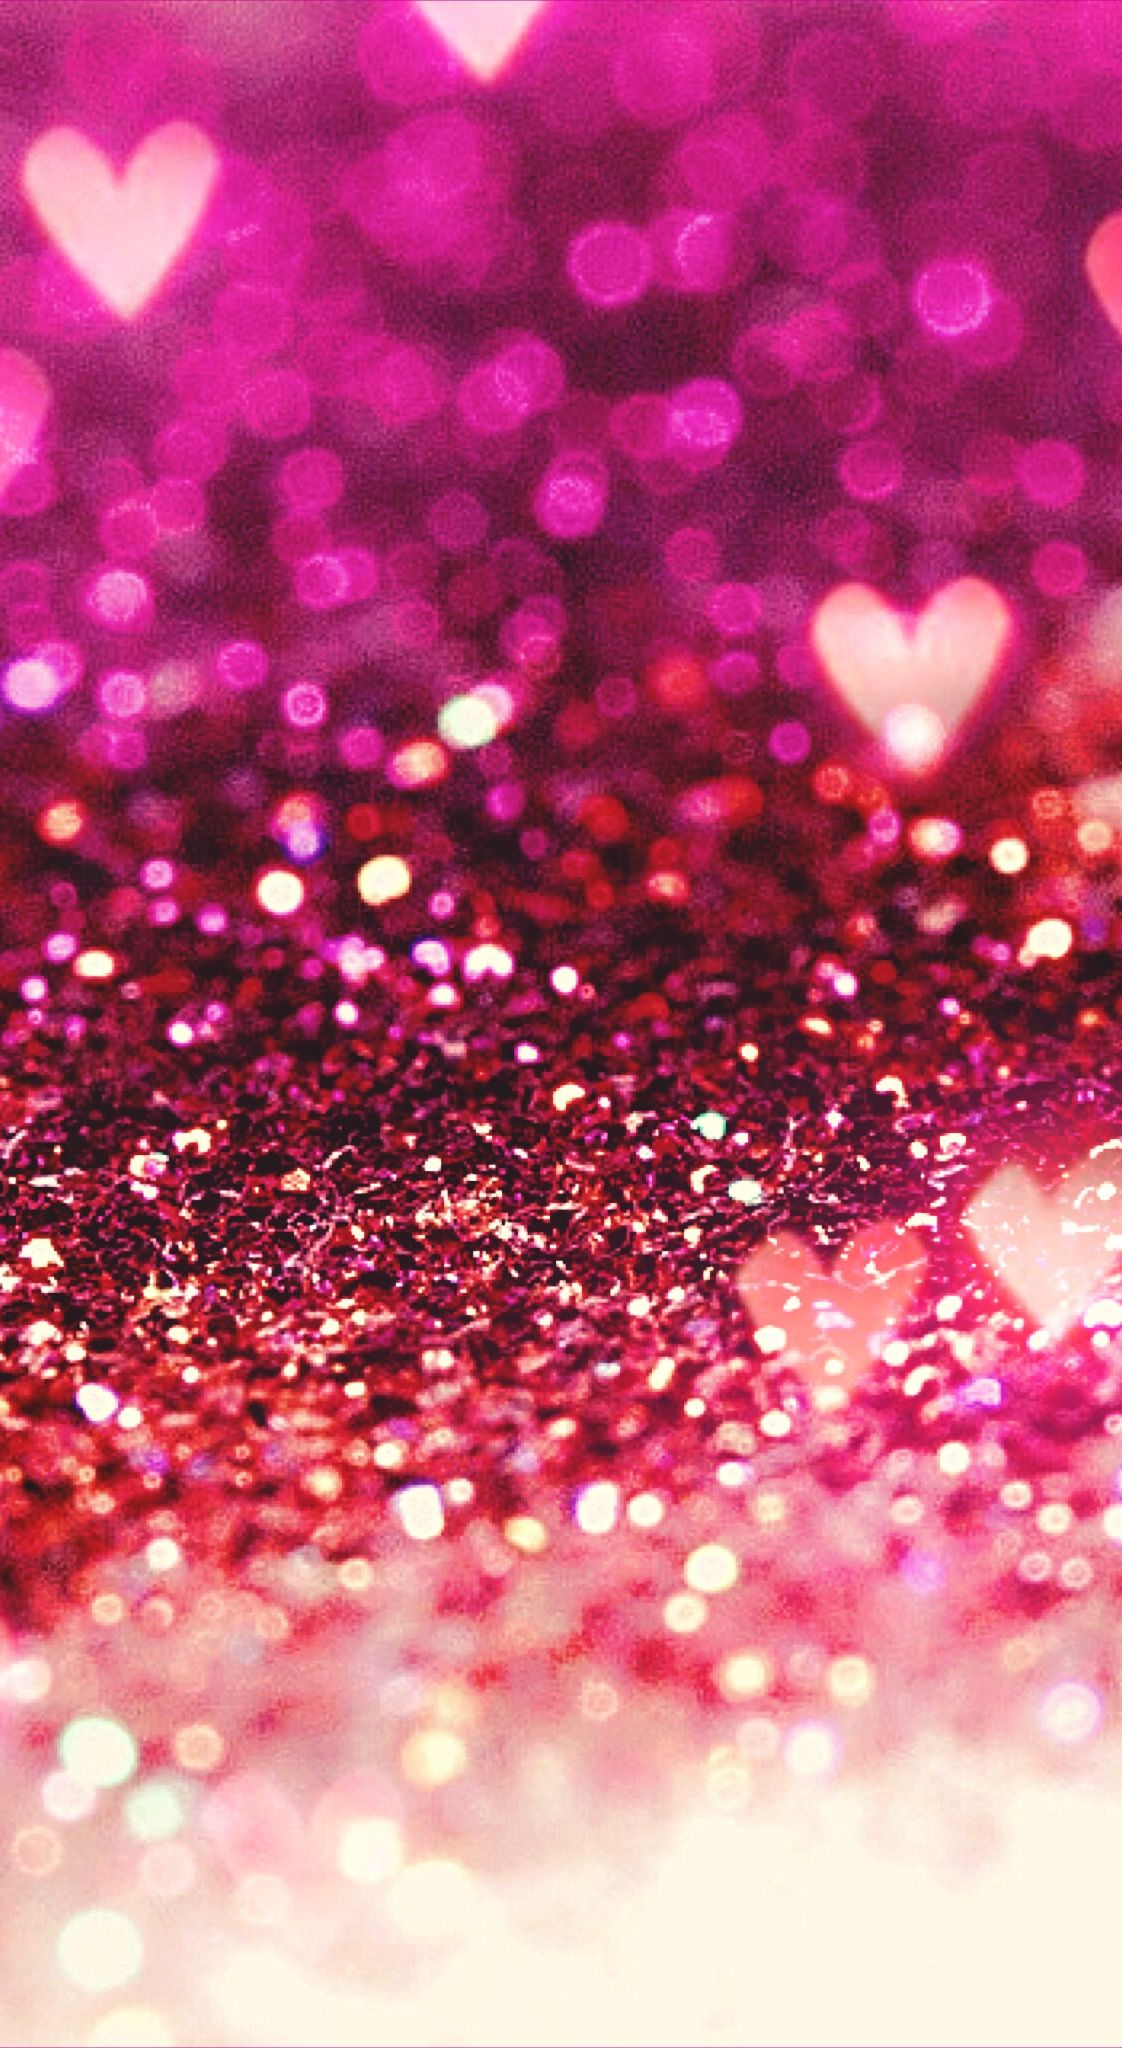 Glitter phone wallpaper Parede com gliter, Papel de